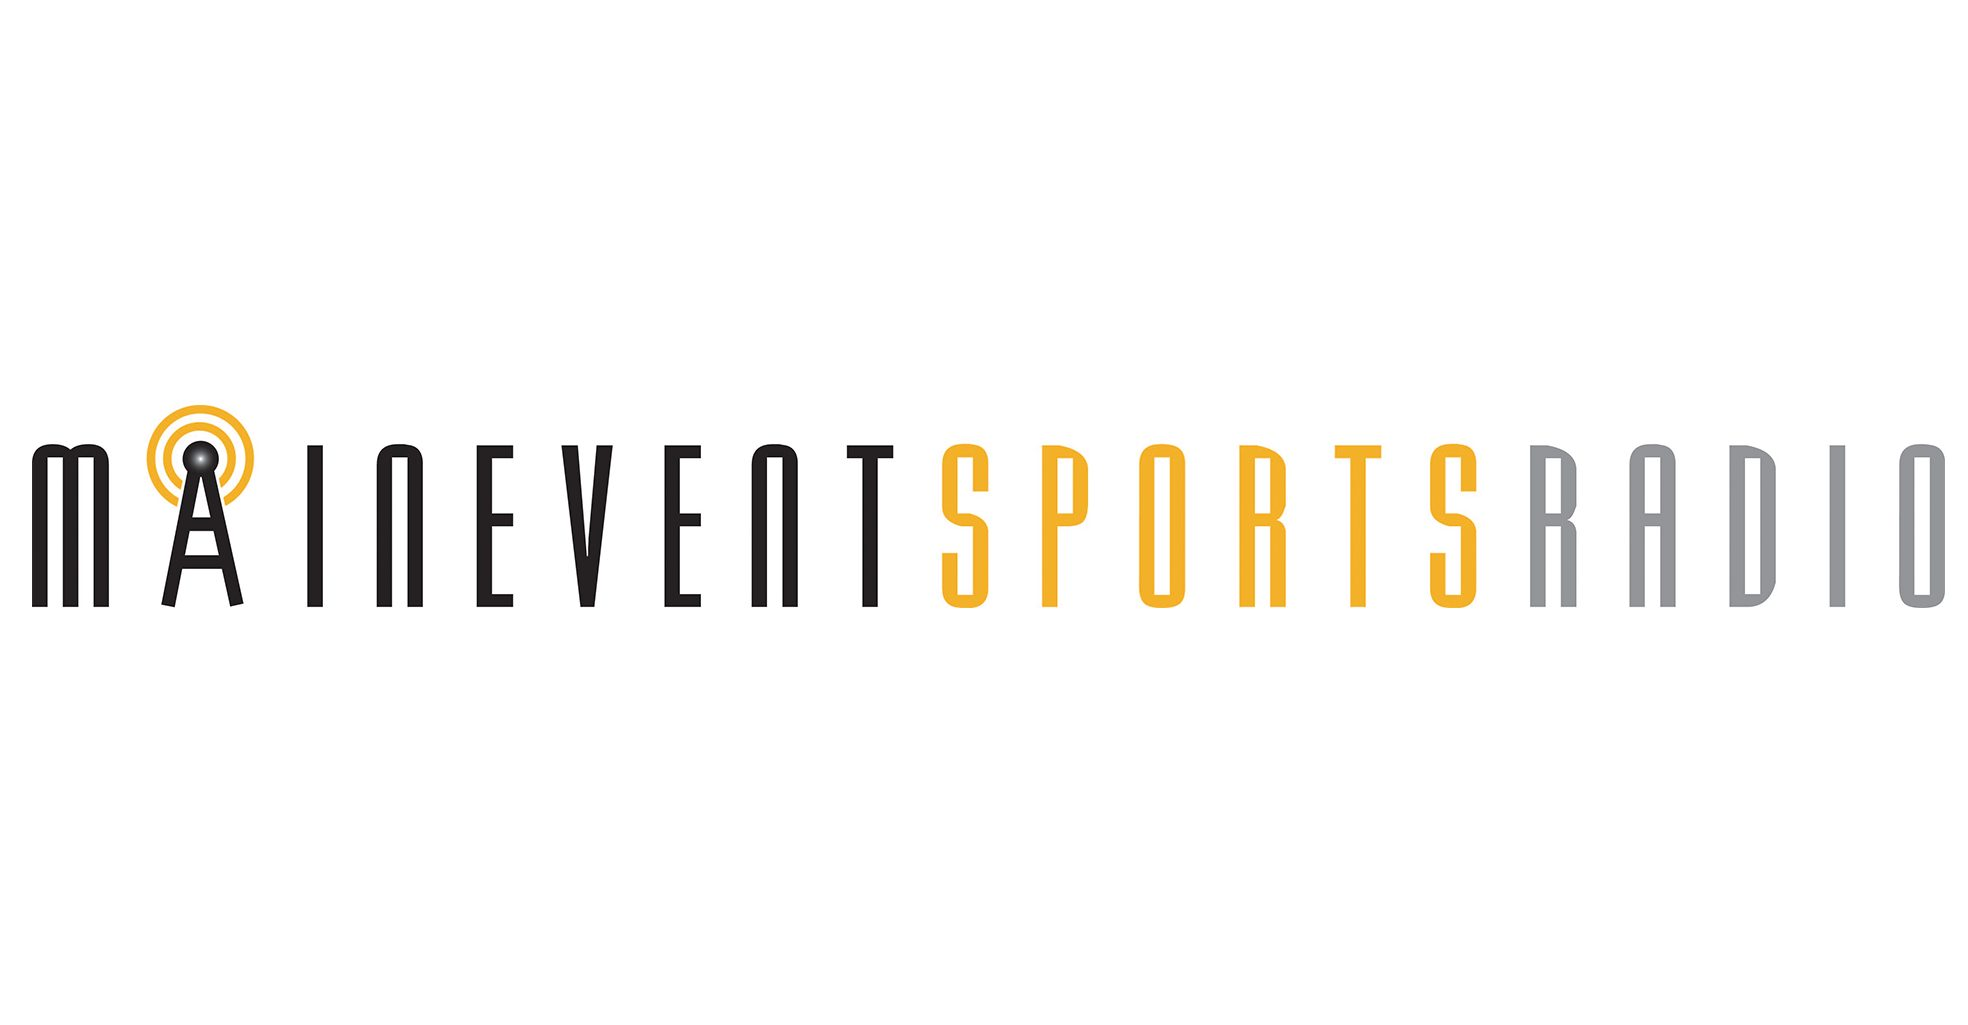 Main Event Sports